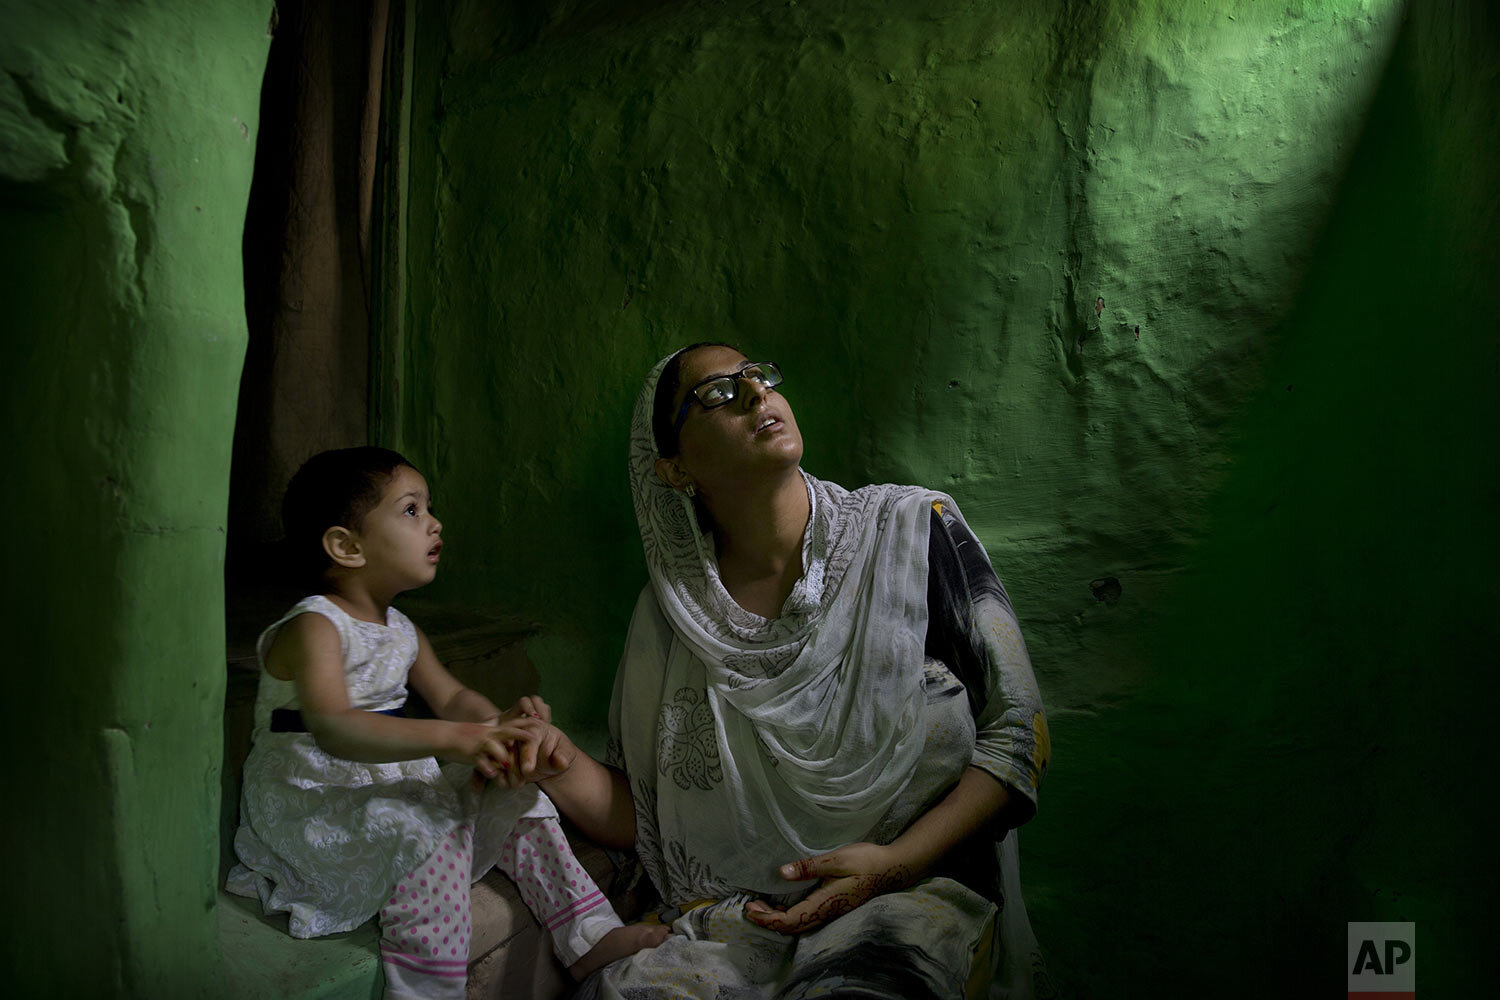 Sumaira Bilal, wife of Kashmiri detainee Bilal Ahmed, talks to her two-year-old daughter as they sit for photographs on a staircase of their house in Srinagar, Indian controlled Kashmir, Friday, Sept. 27, 2019. (AP Photo/ Dar Yasin)